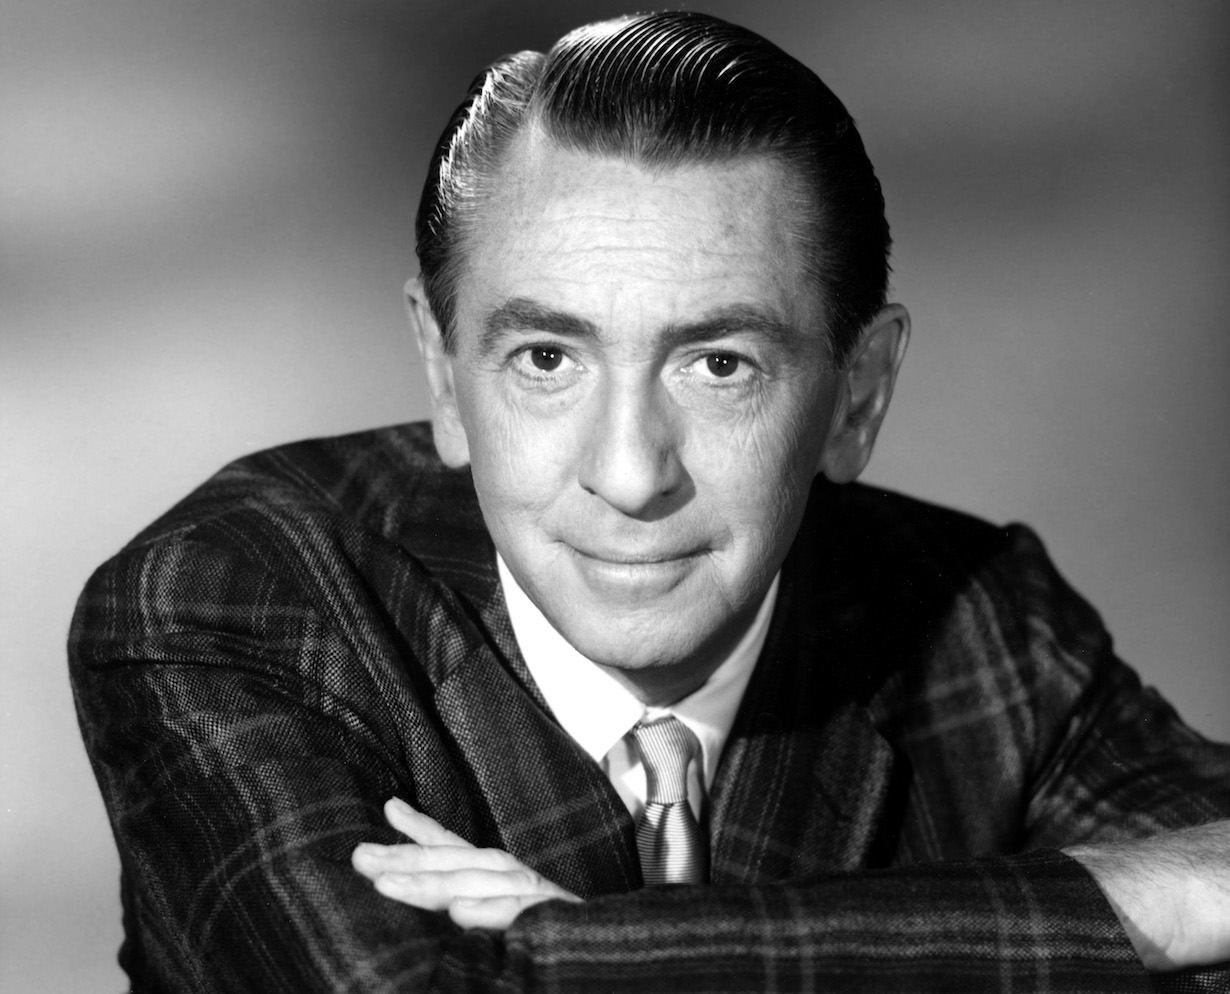 DAYS OF OUR LIVES, MacDonald Carey tom horton